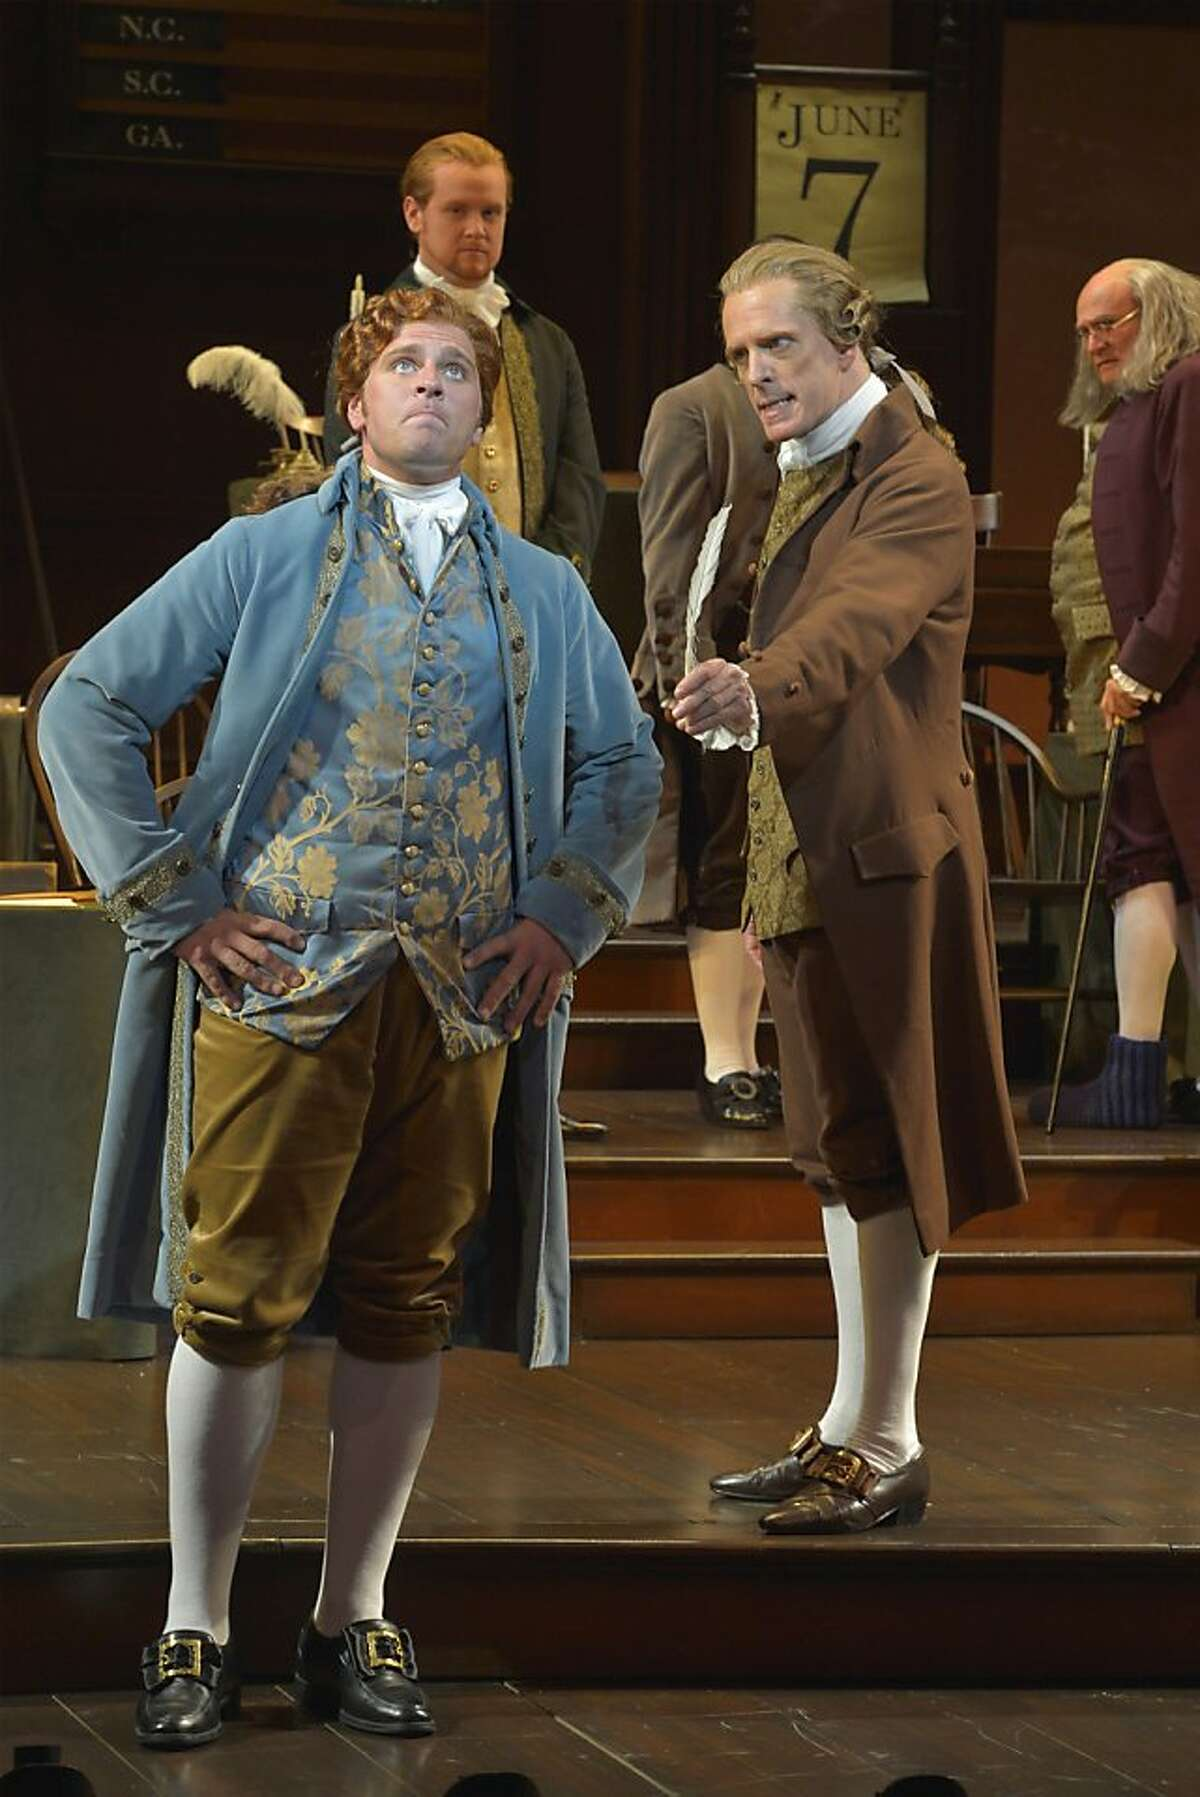 Thomas Jefferson (Brandon Dahlquist left) resists as John Adams (John Hickok) insists he's the best person to write the Declaration of Independence in the musical